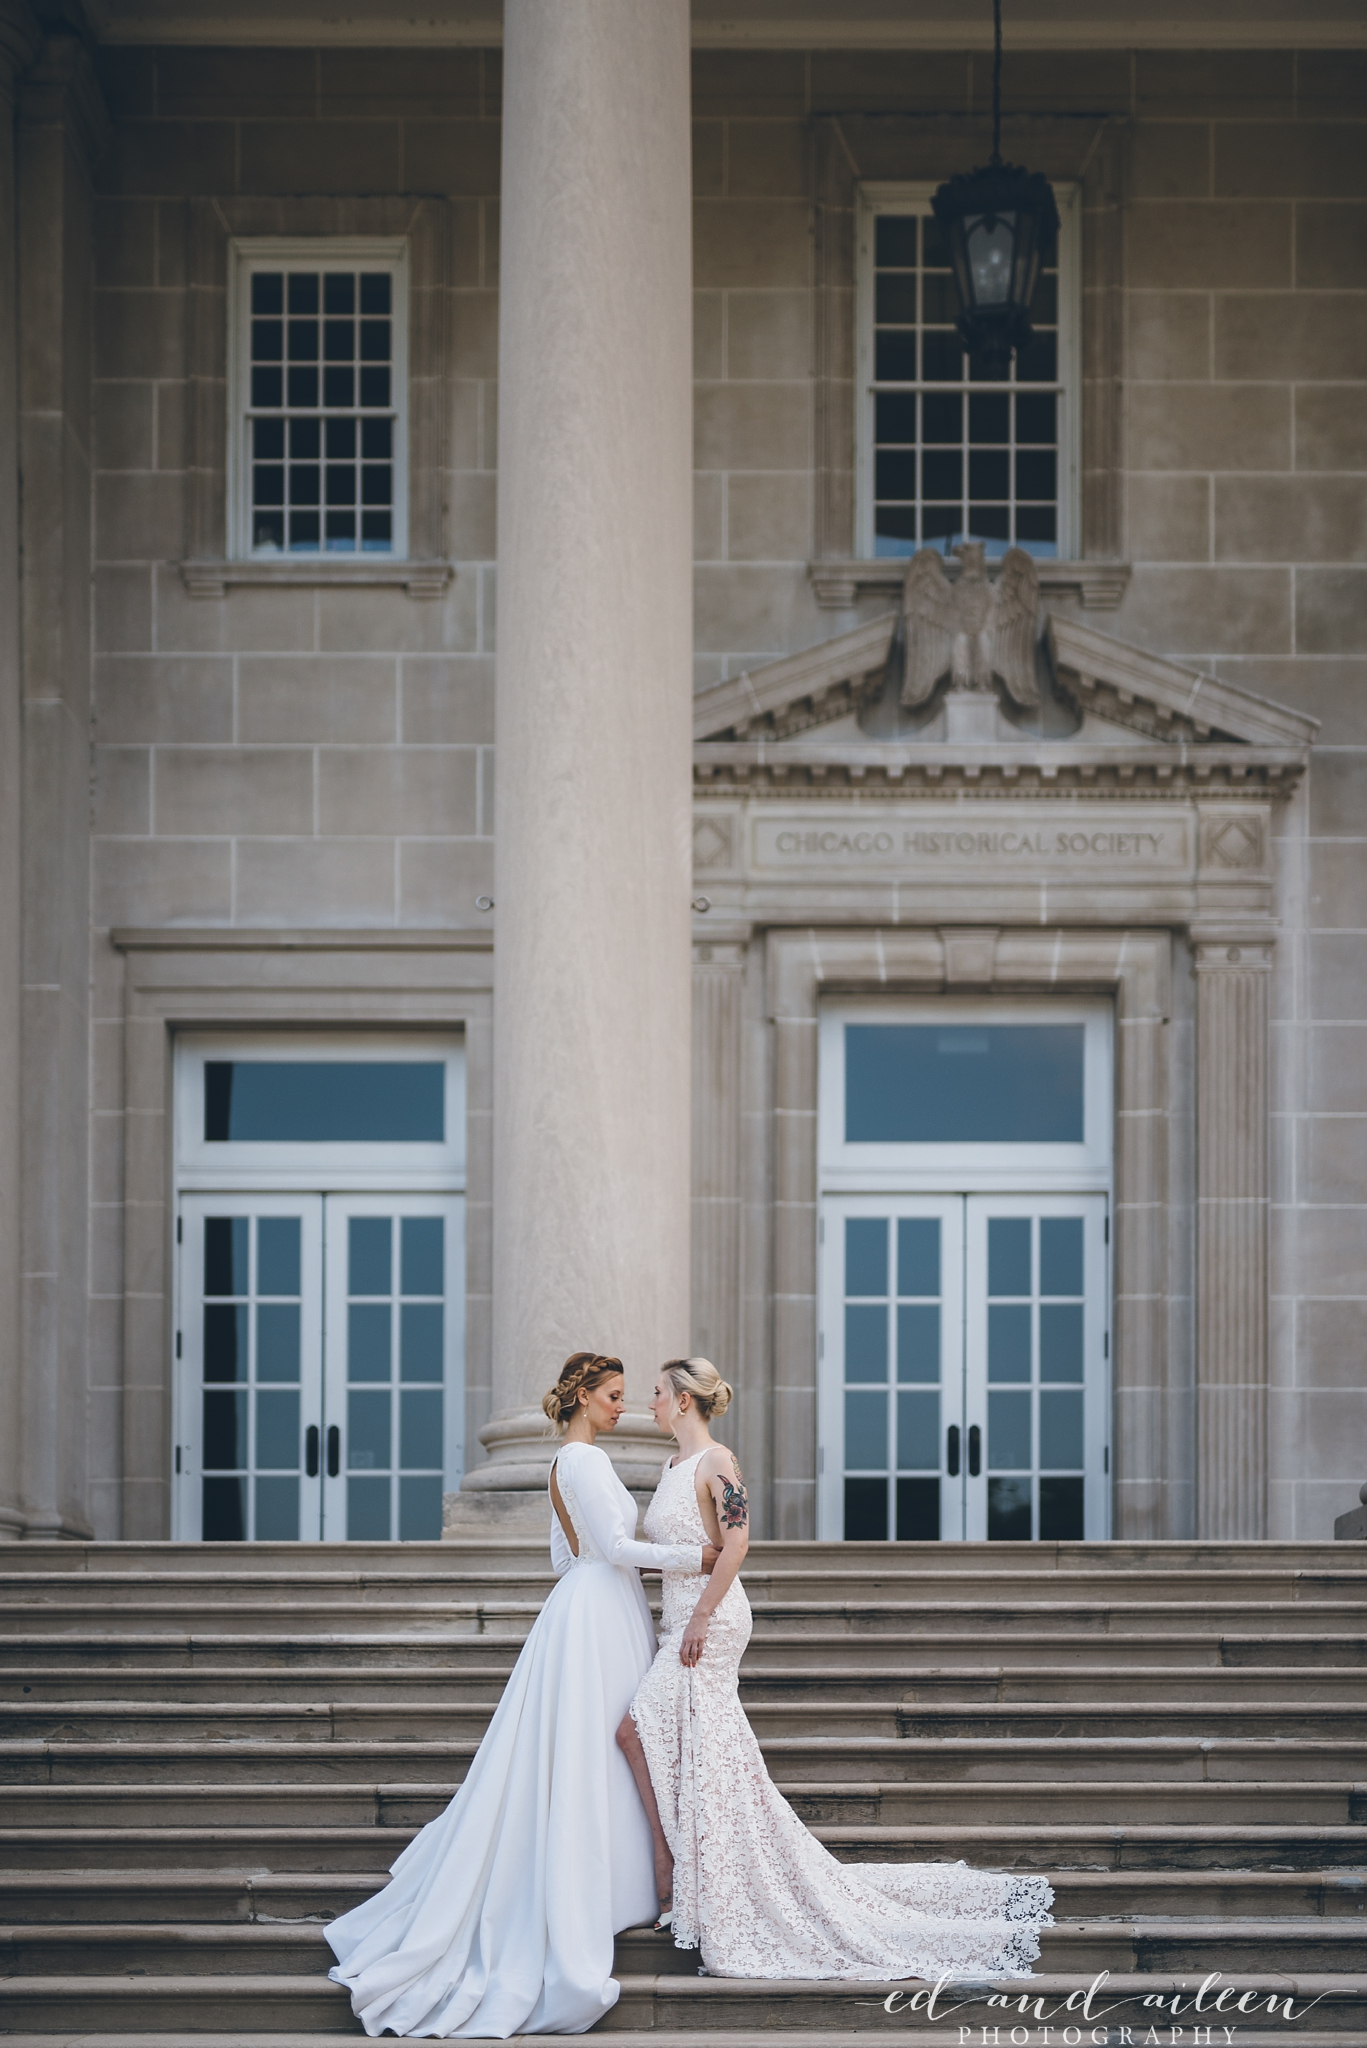 Floral and Long Sleeve Bridal Gowns Chicago Wedding Ed and Aileen Photography